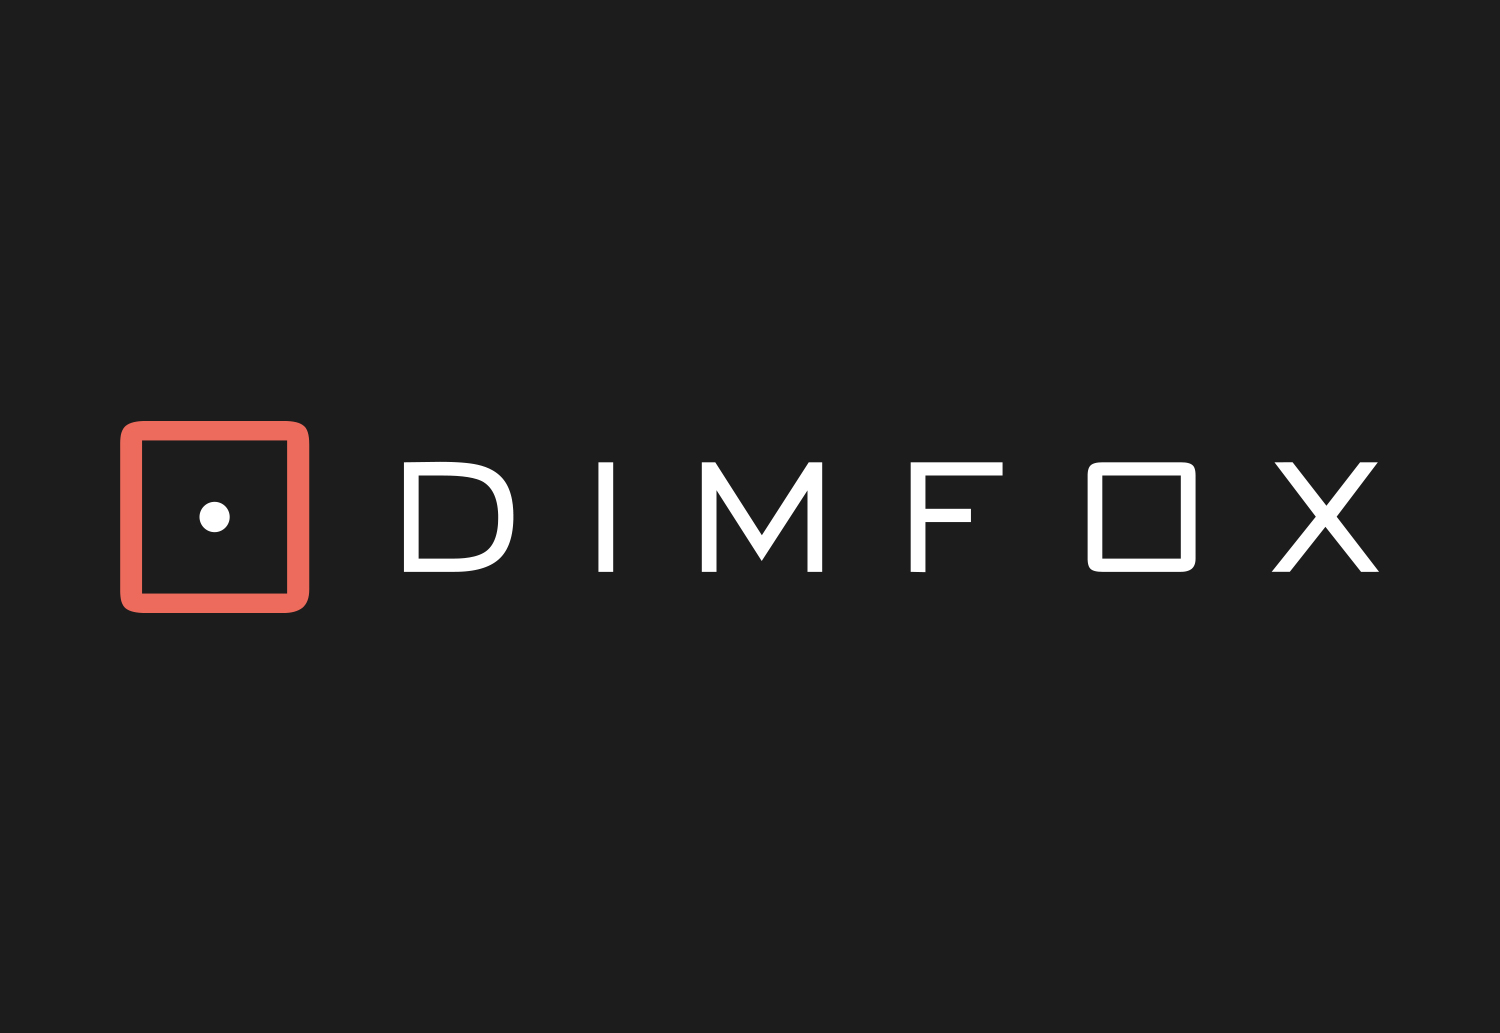 Final DIMFOX Logo Design - Dark Background